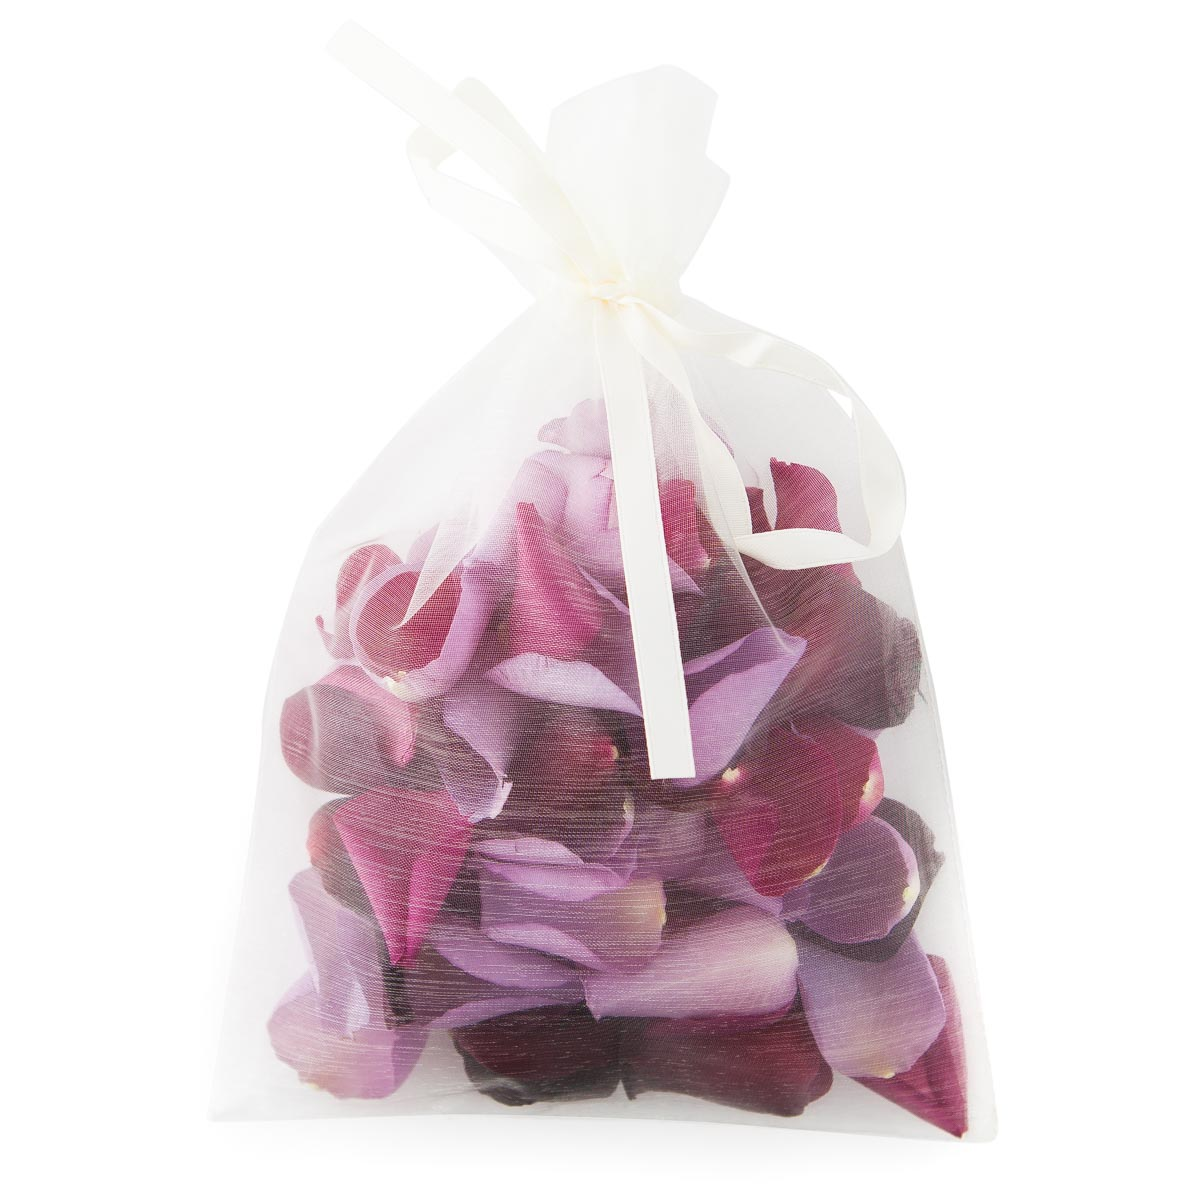 large natural rose petals 10 handful bag